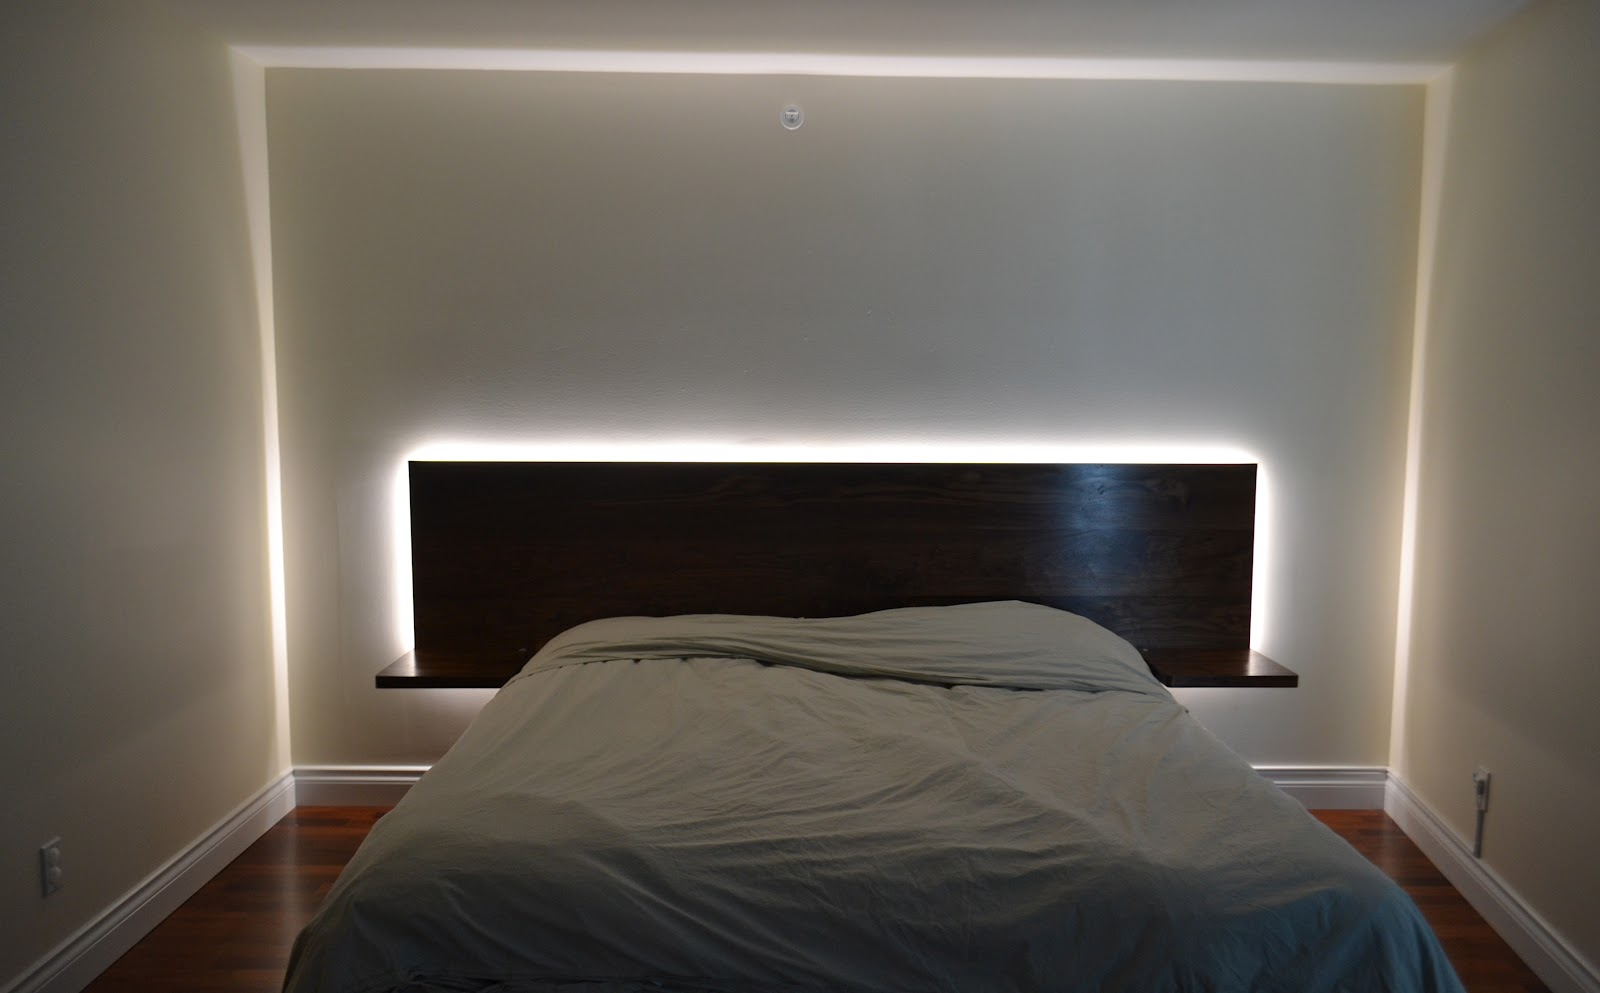 walnut headboard w led in element designs. Black Bedroom Furniture Sets. Home Design Ideas